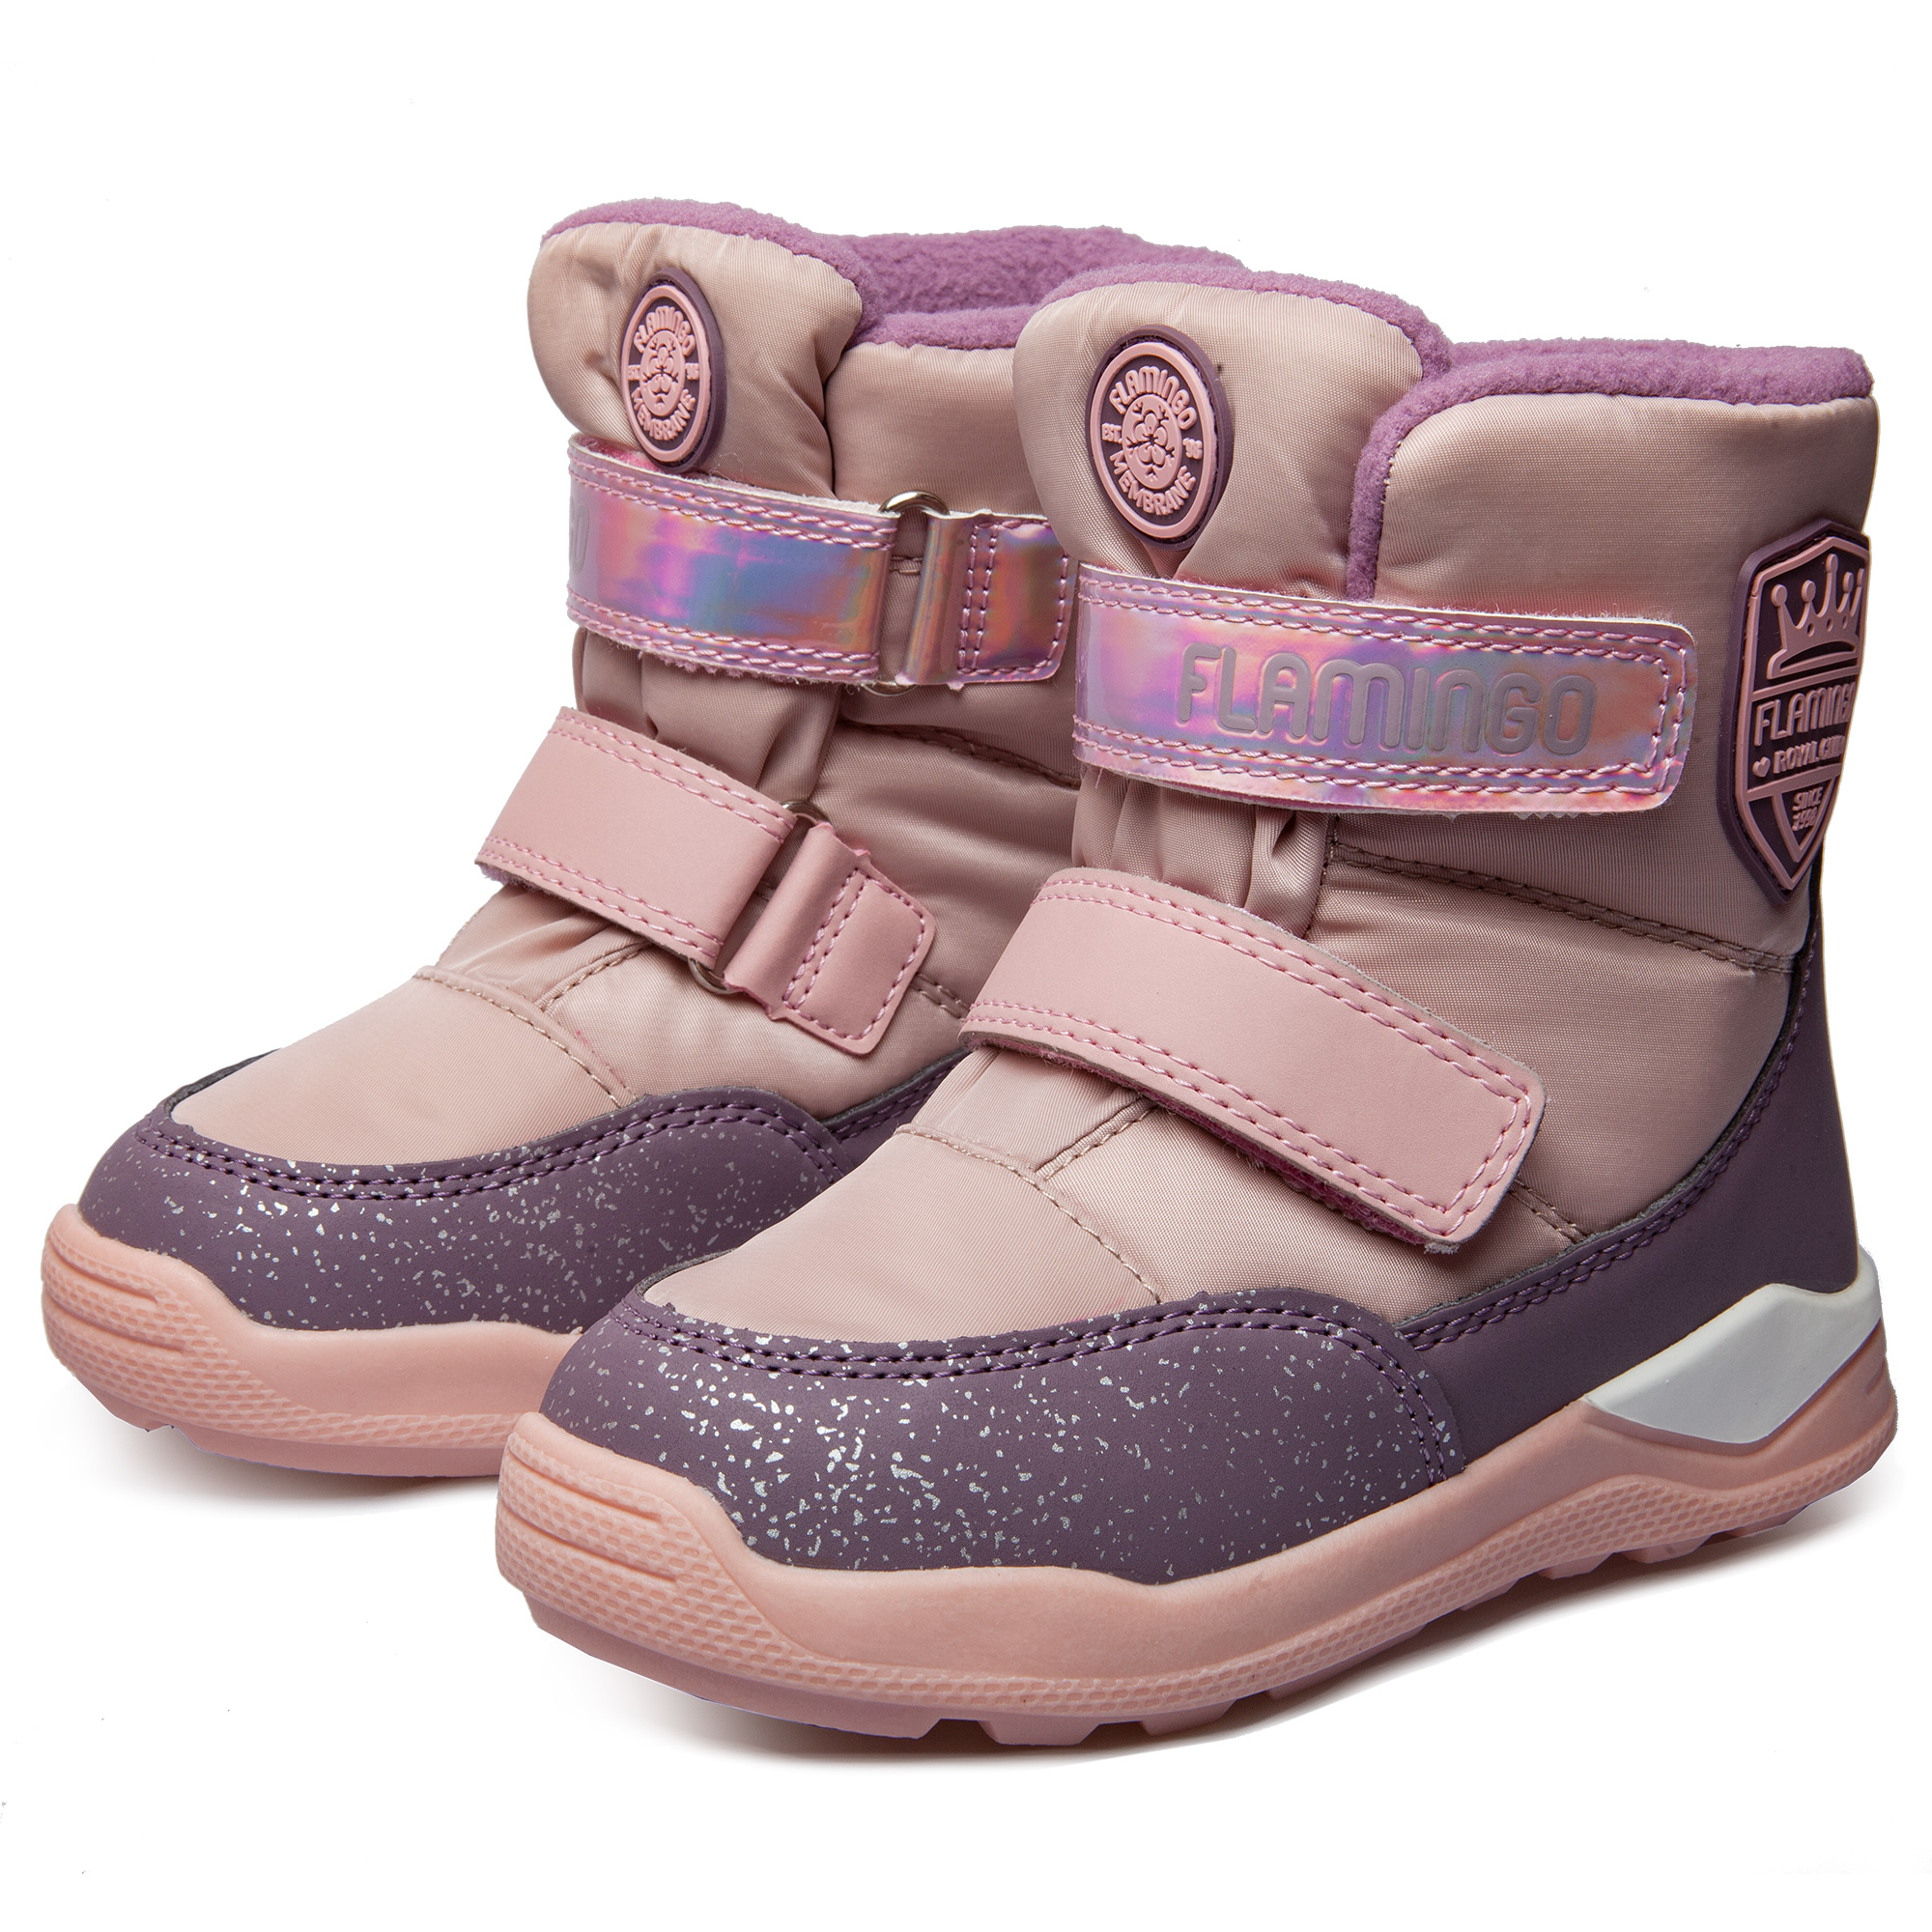 Flamingo shoes 92m-qk-1627 shoes for children 27-32 # flamingo winter anti slip waterproof wool warm high quality kids shoes orthotic arch size 23 28 snow boots for girl 82m qk 0946